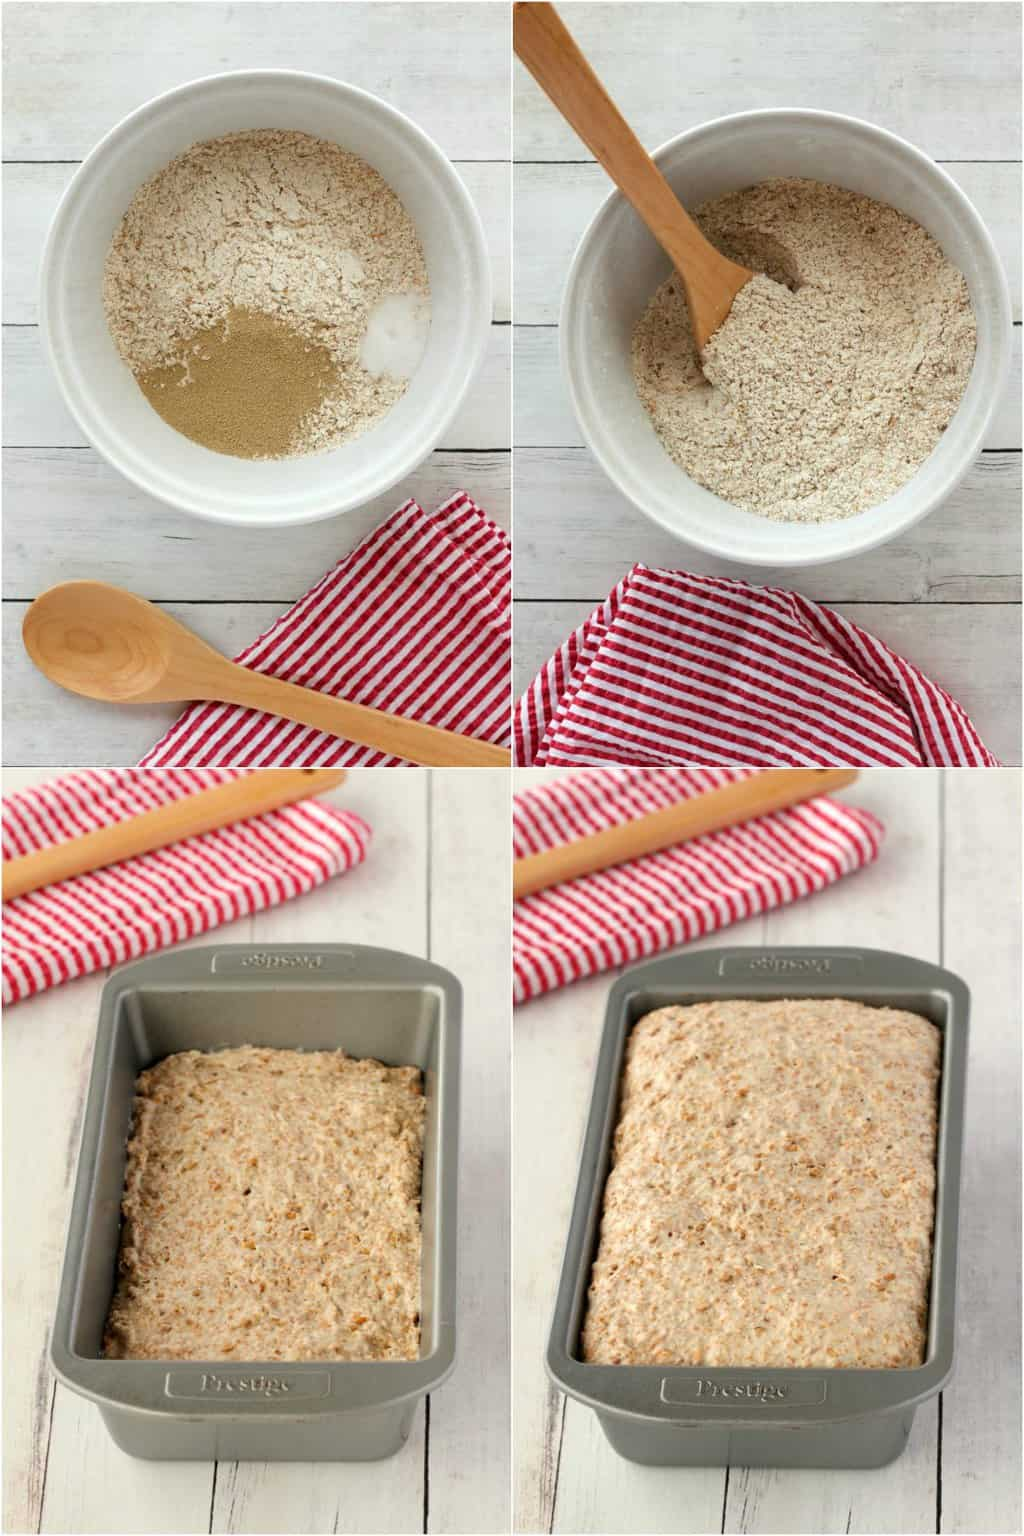 Step by step process photo collage of making whole wheat bread.